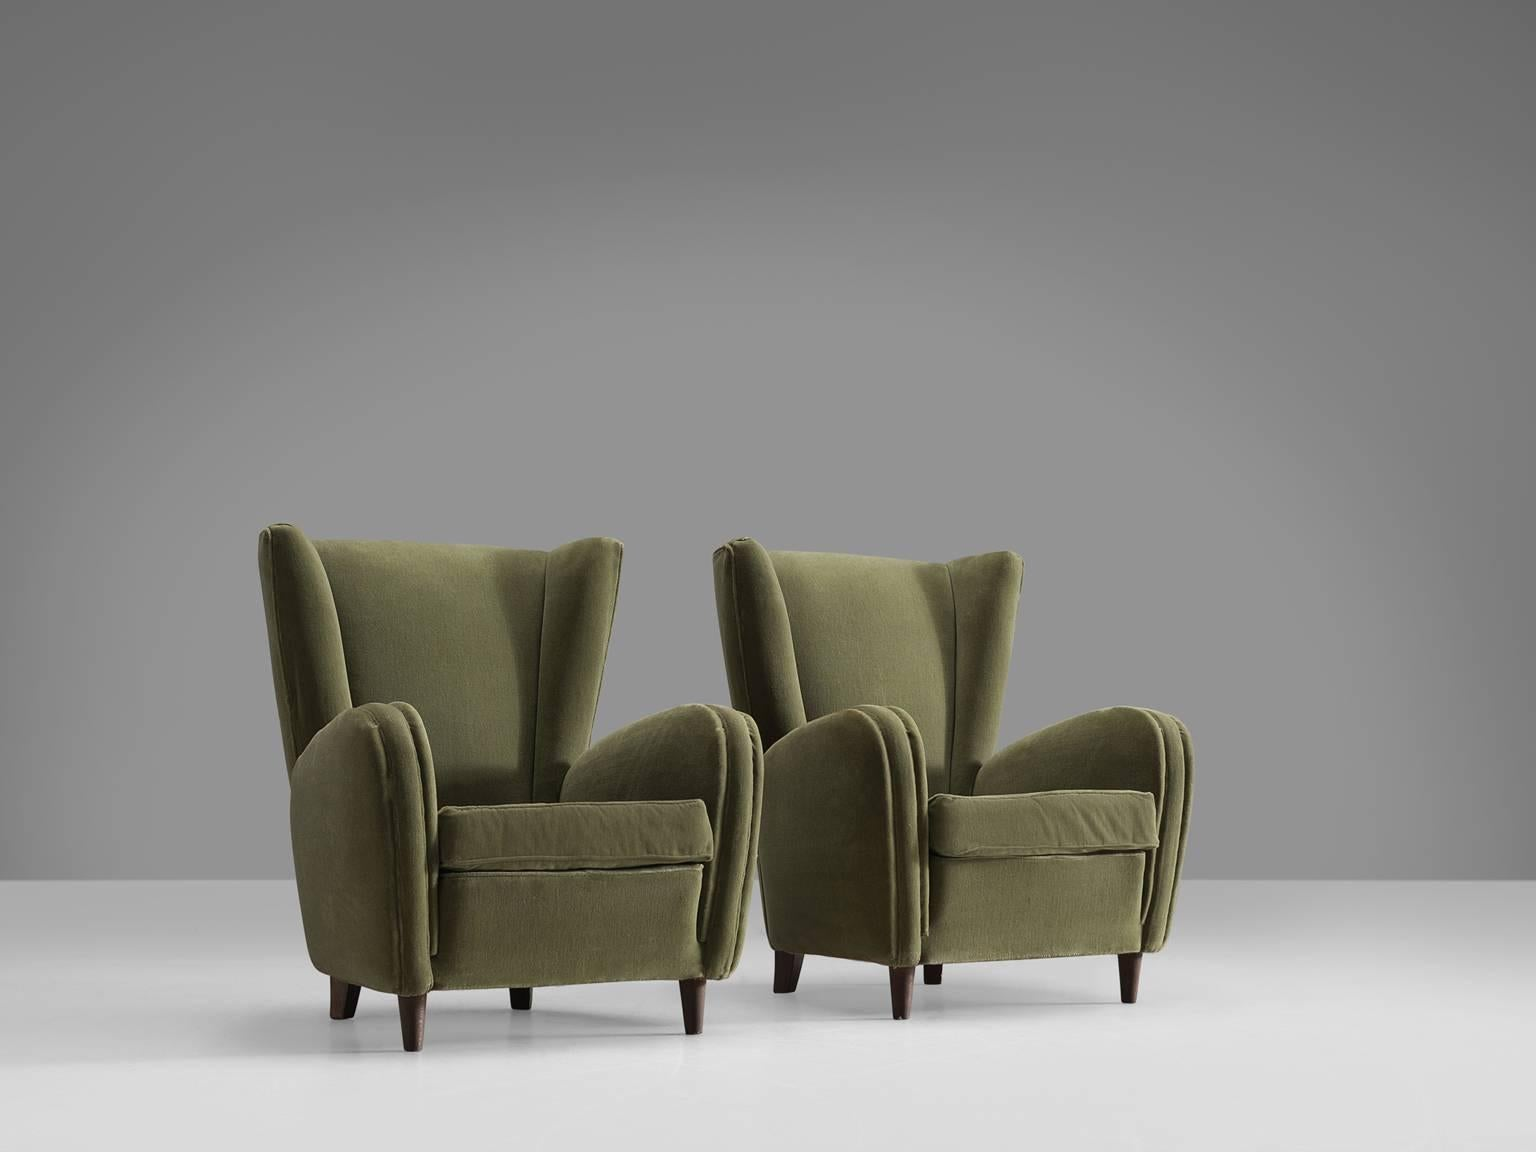 Set Of Armchairs, Olive Green Fabric, Wood, Italy, 1950s. This Set